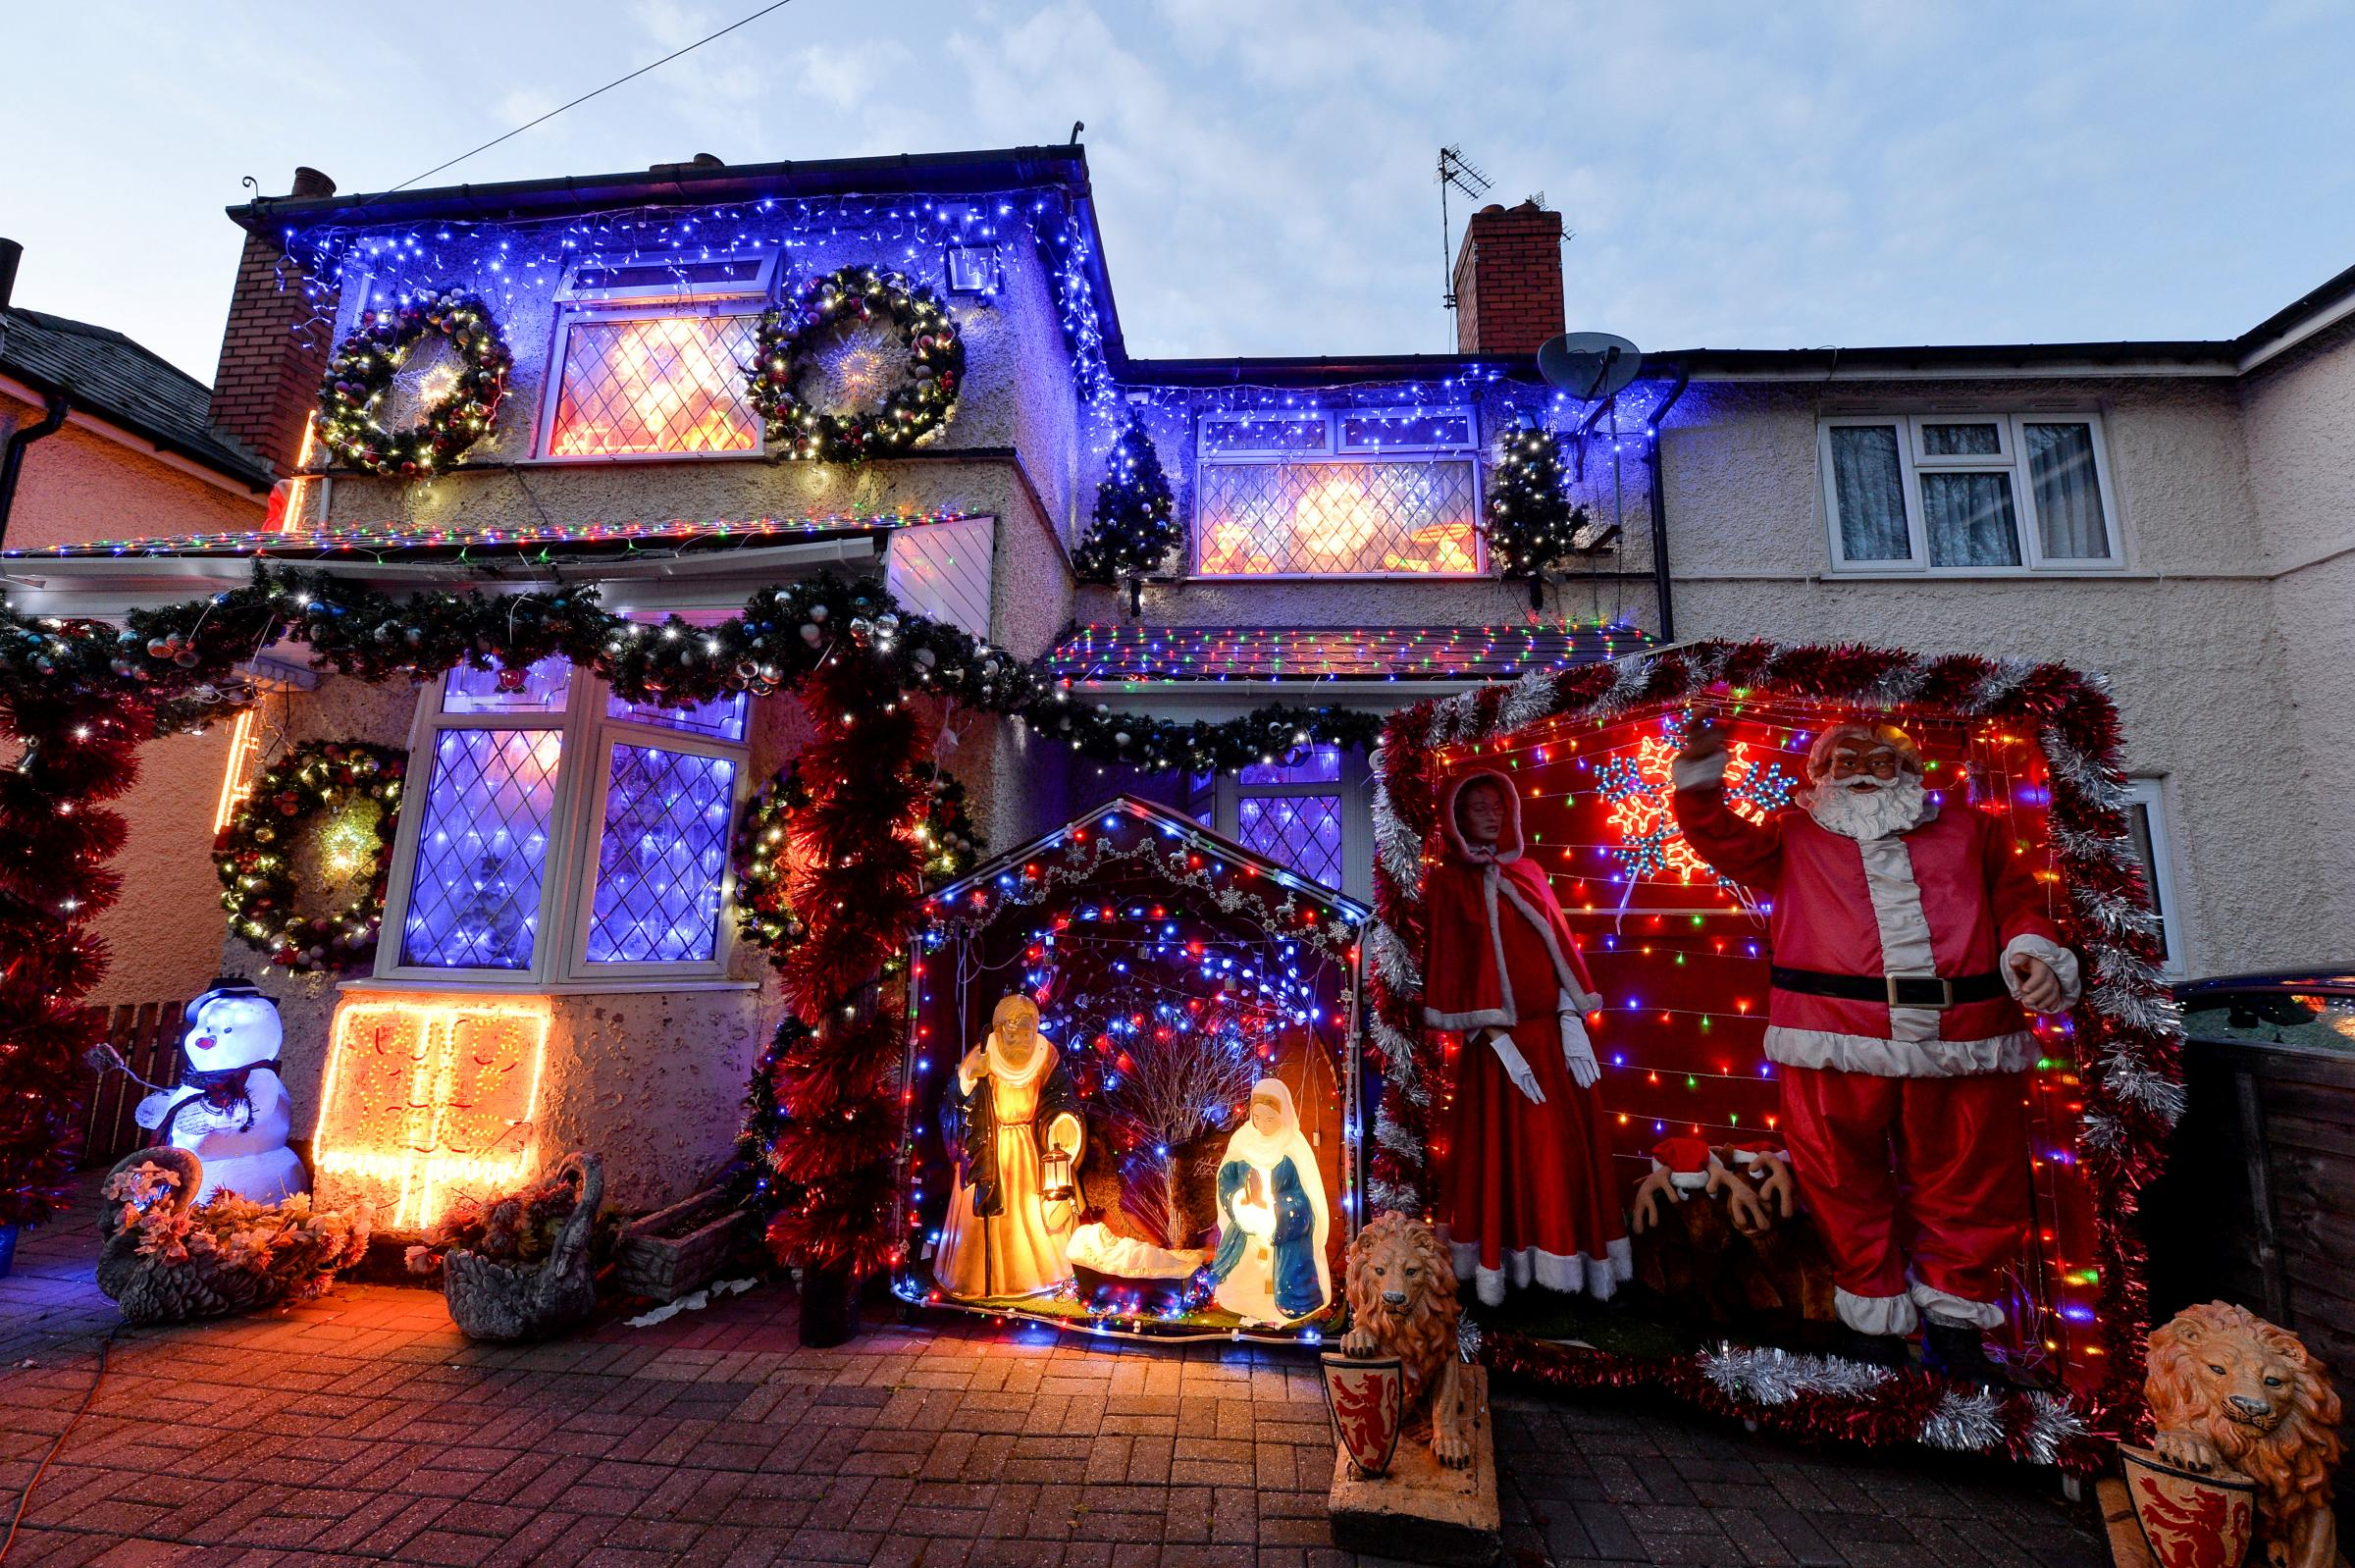 The missing christmas decorations uk hd - Festive Mad Family Puts Up Dazzling Display Of Christmas Decorations 60 Days Early Evening Times